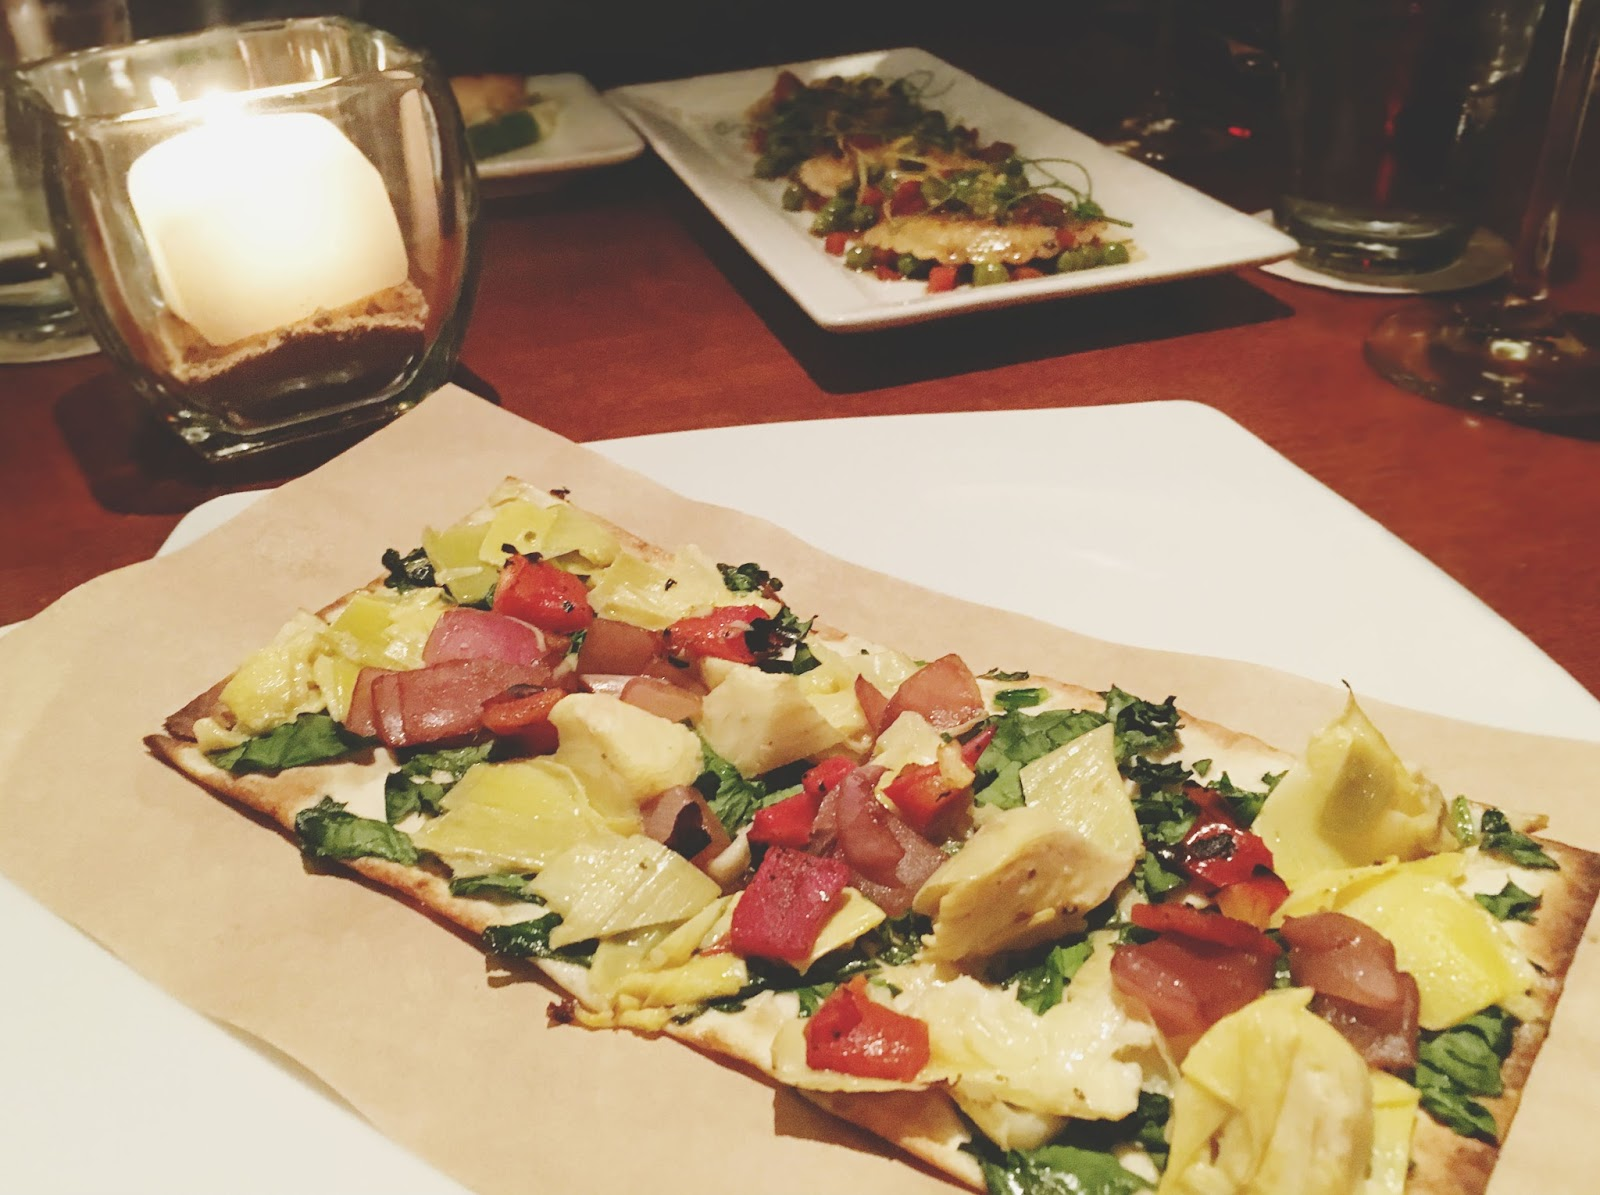 vegan artichoke flatbread at Seasons 52, a restaurant in Houston, Texas